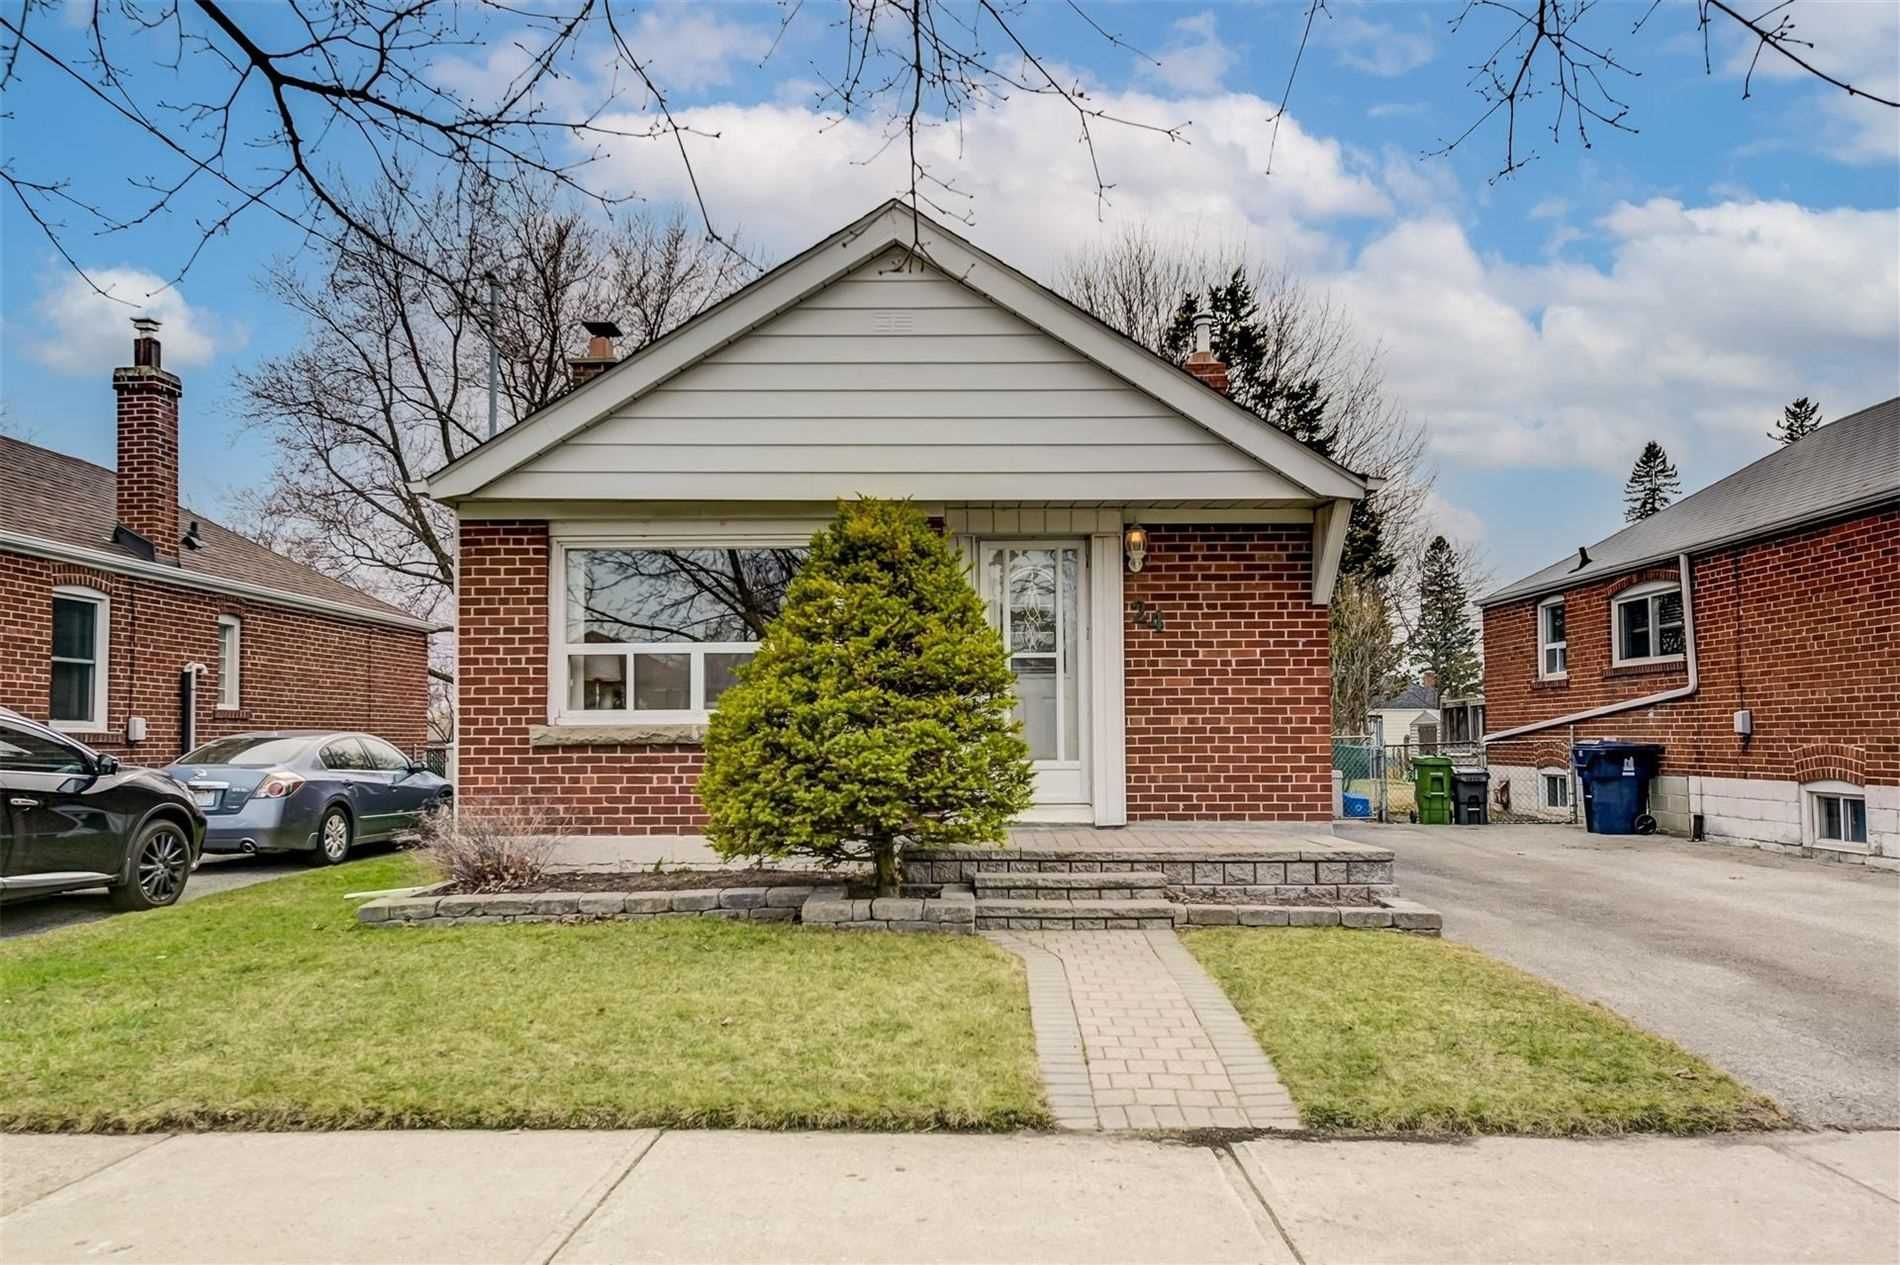 Main Photo: 24 Highvale Road in Toronto: Clairlea-Birchmount House (Bungalow) for sale (Toronto E04)  : MLS®# E5182844